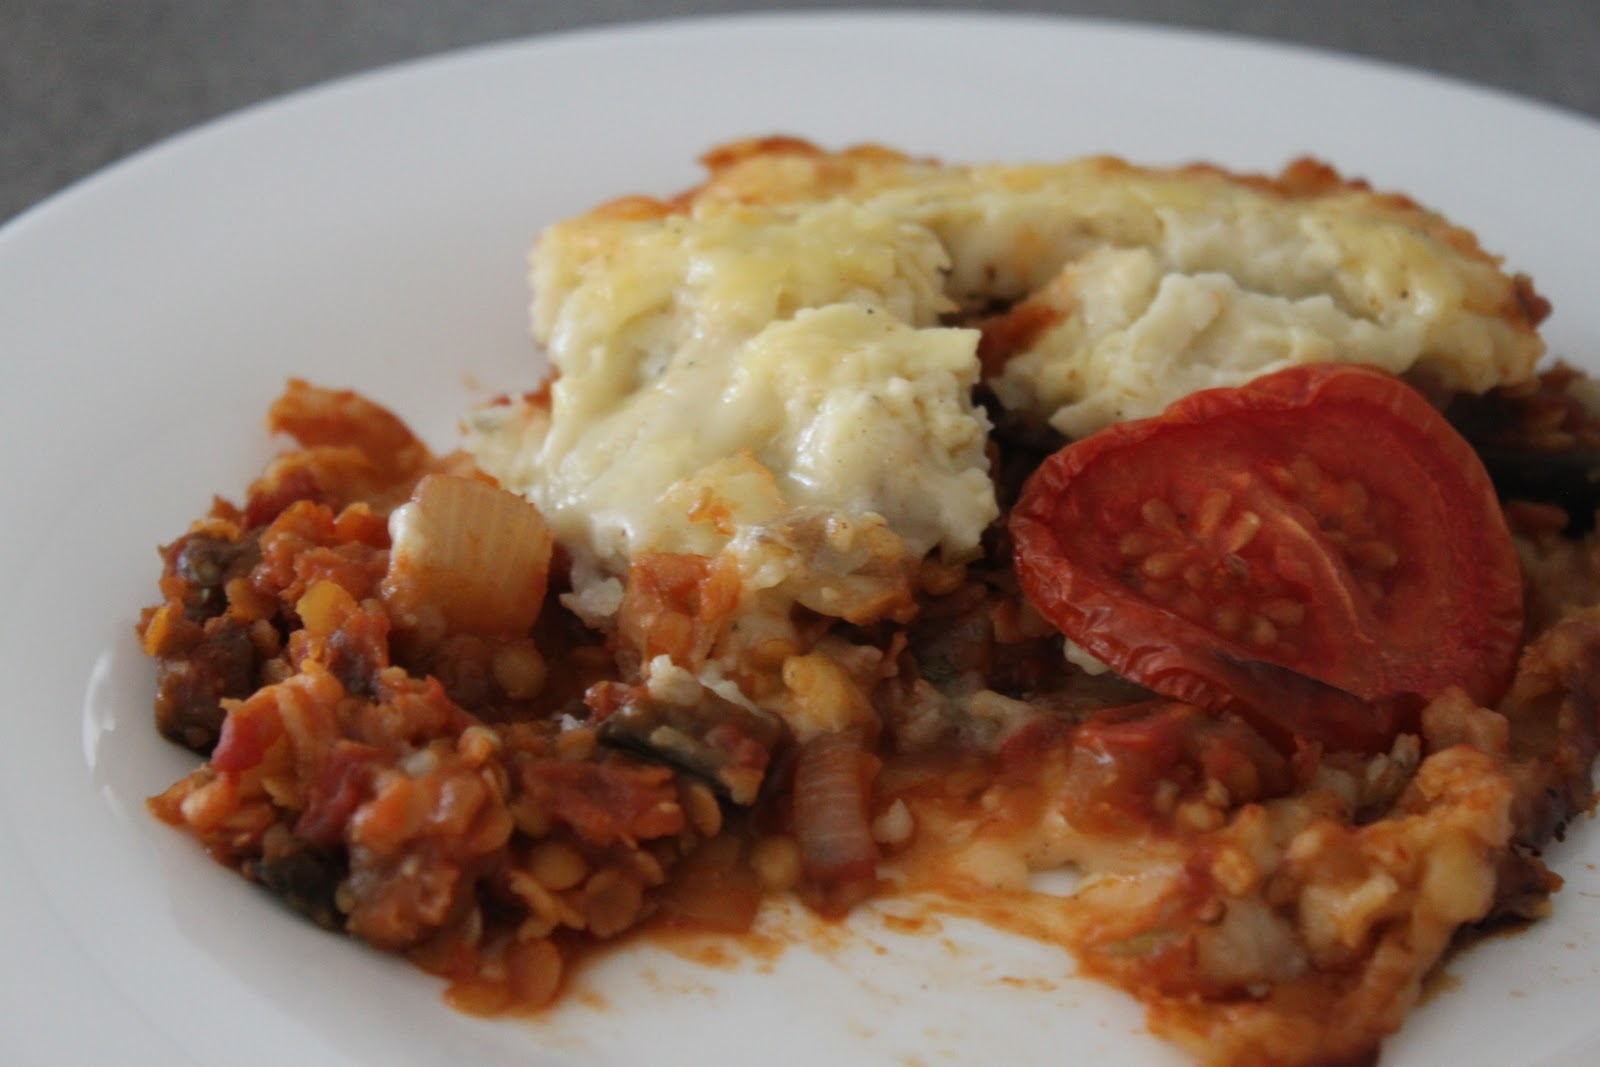 ... has moved! For this recipe, please see here: vegetarian moussaka